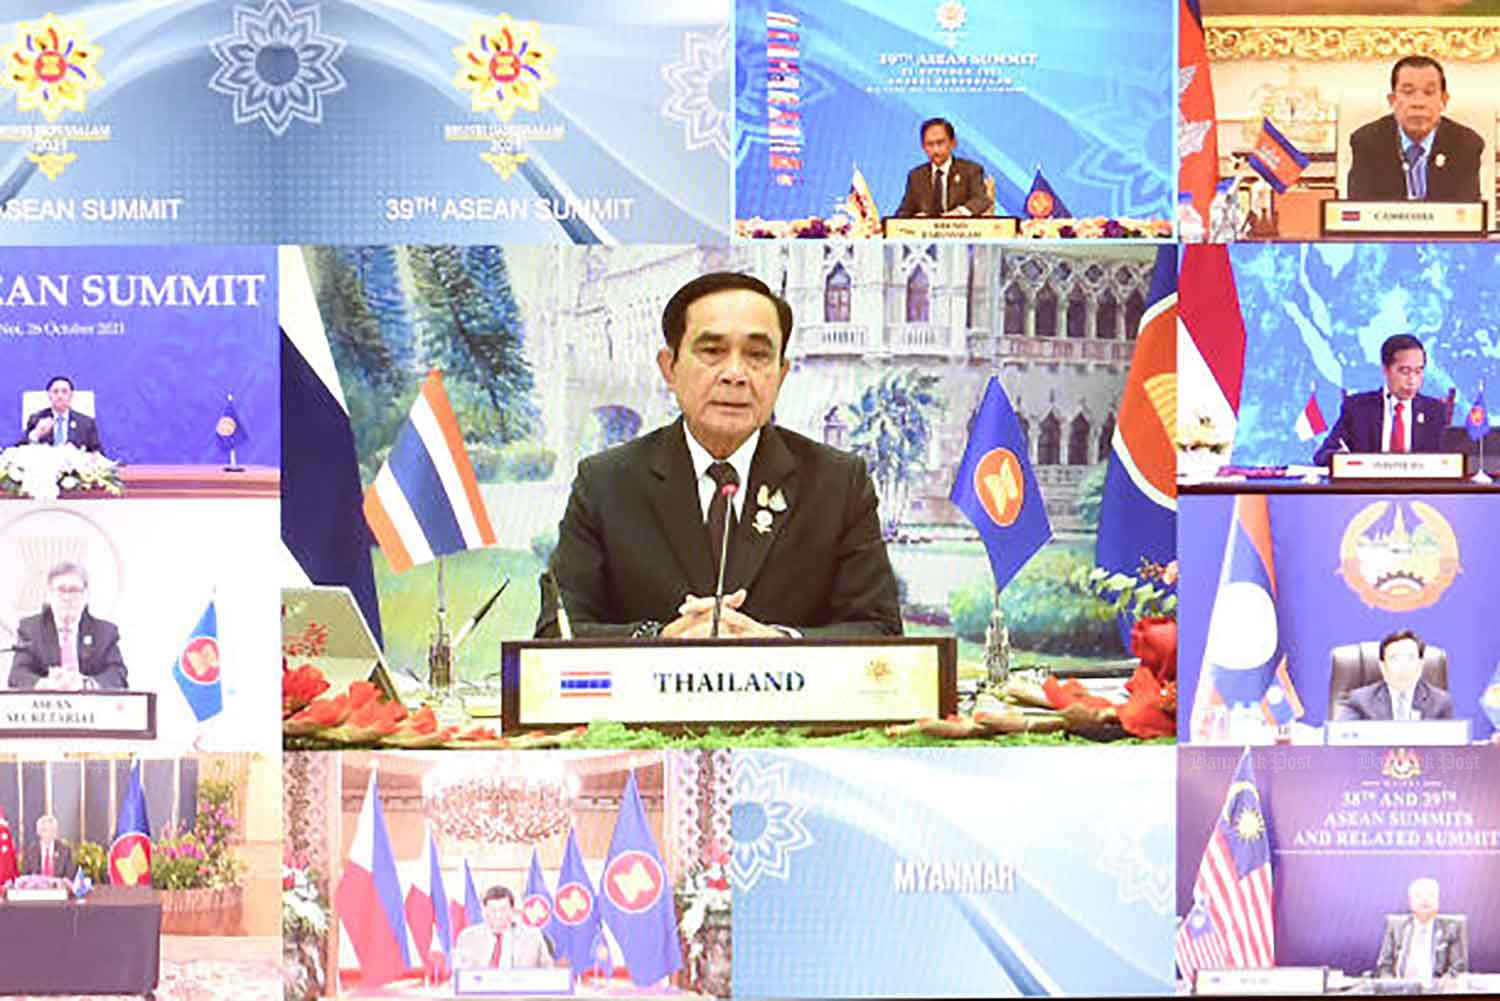 PM presses Asean to reopen